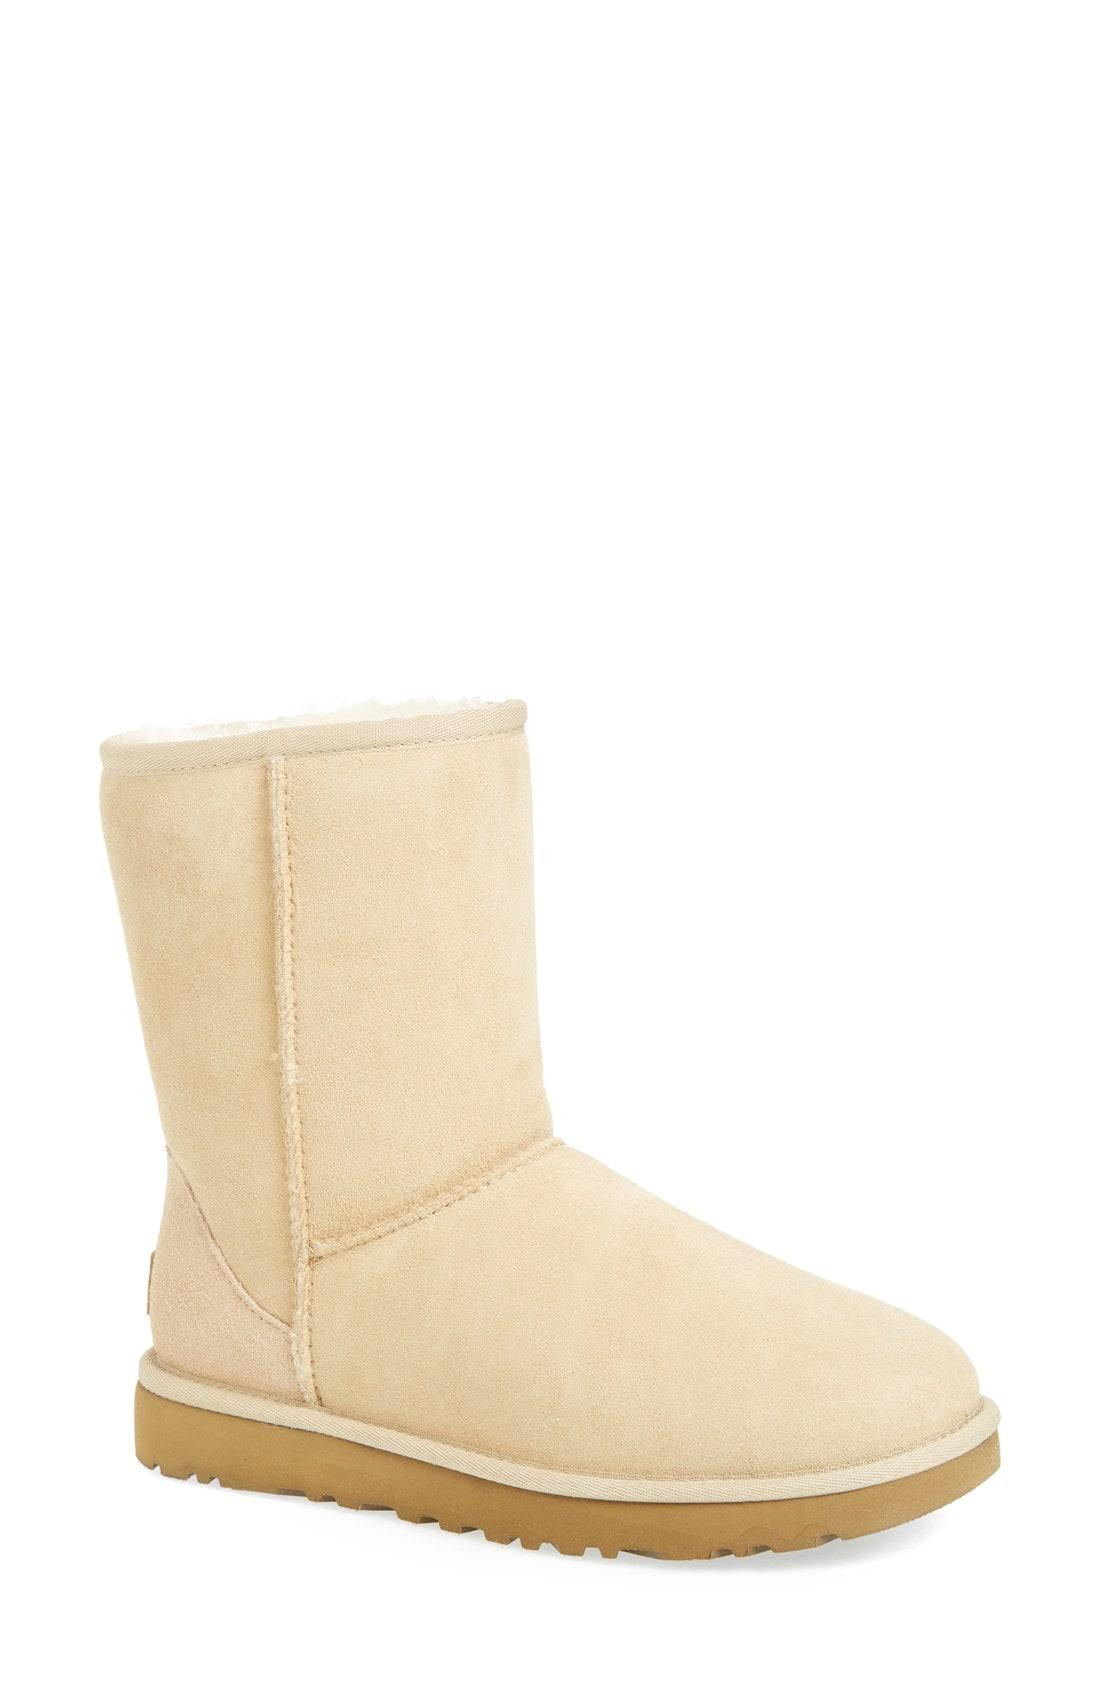 b67ef9ebd3e UGG. Women s Natural Ugg Classic Li Genuine Shearling Lined Short Boots.   160 From Nordstrom